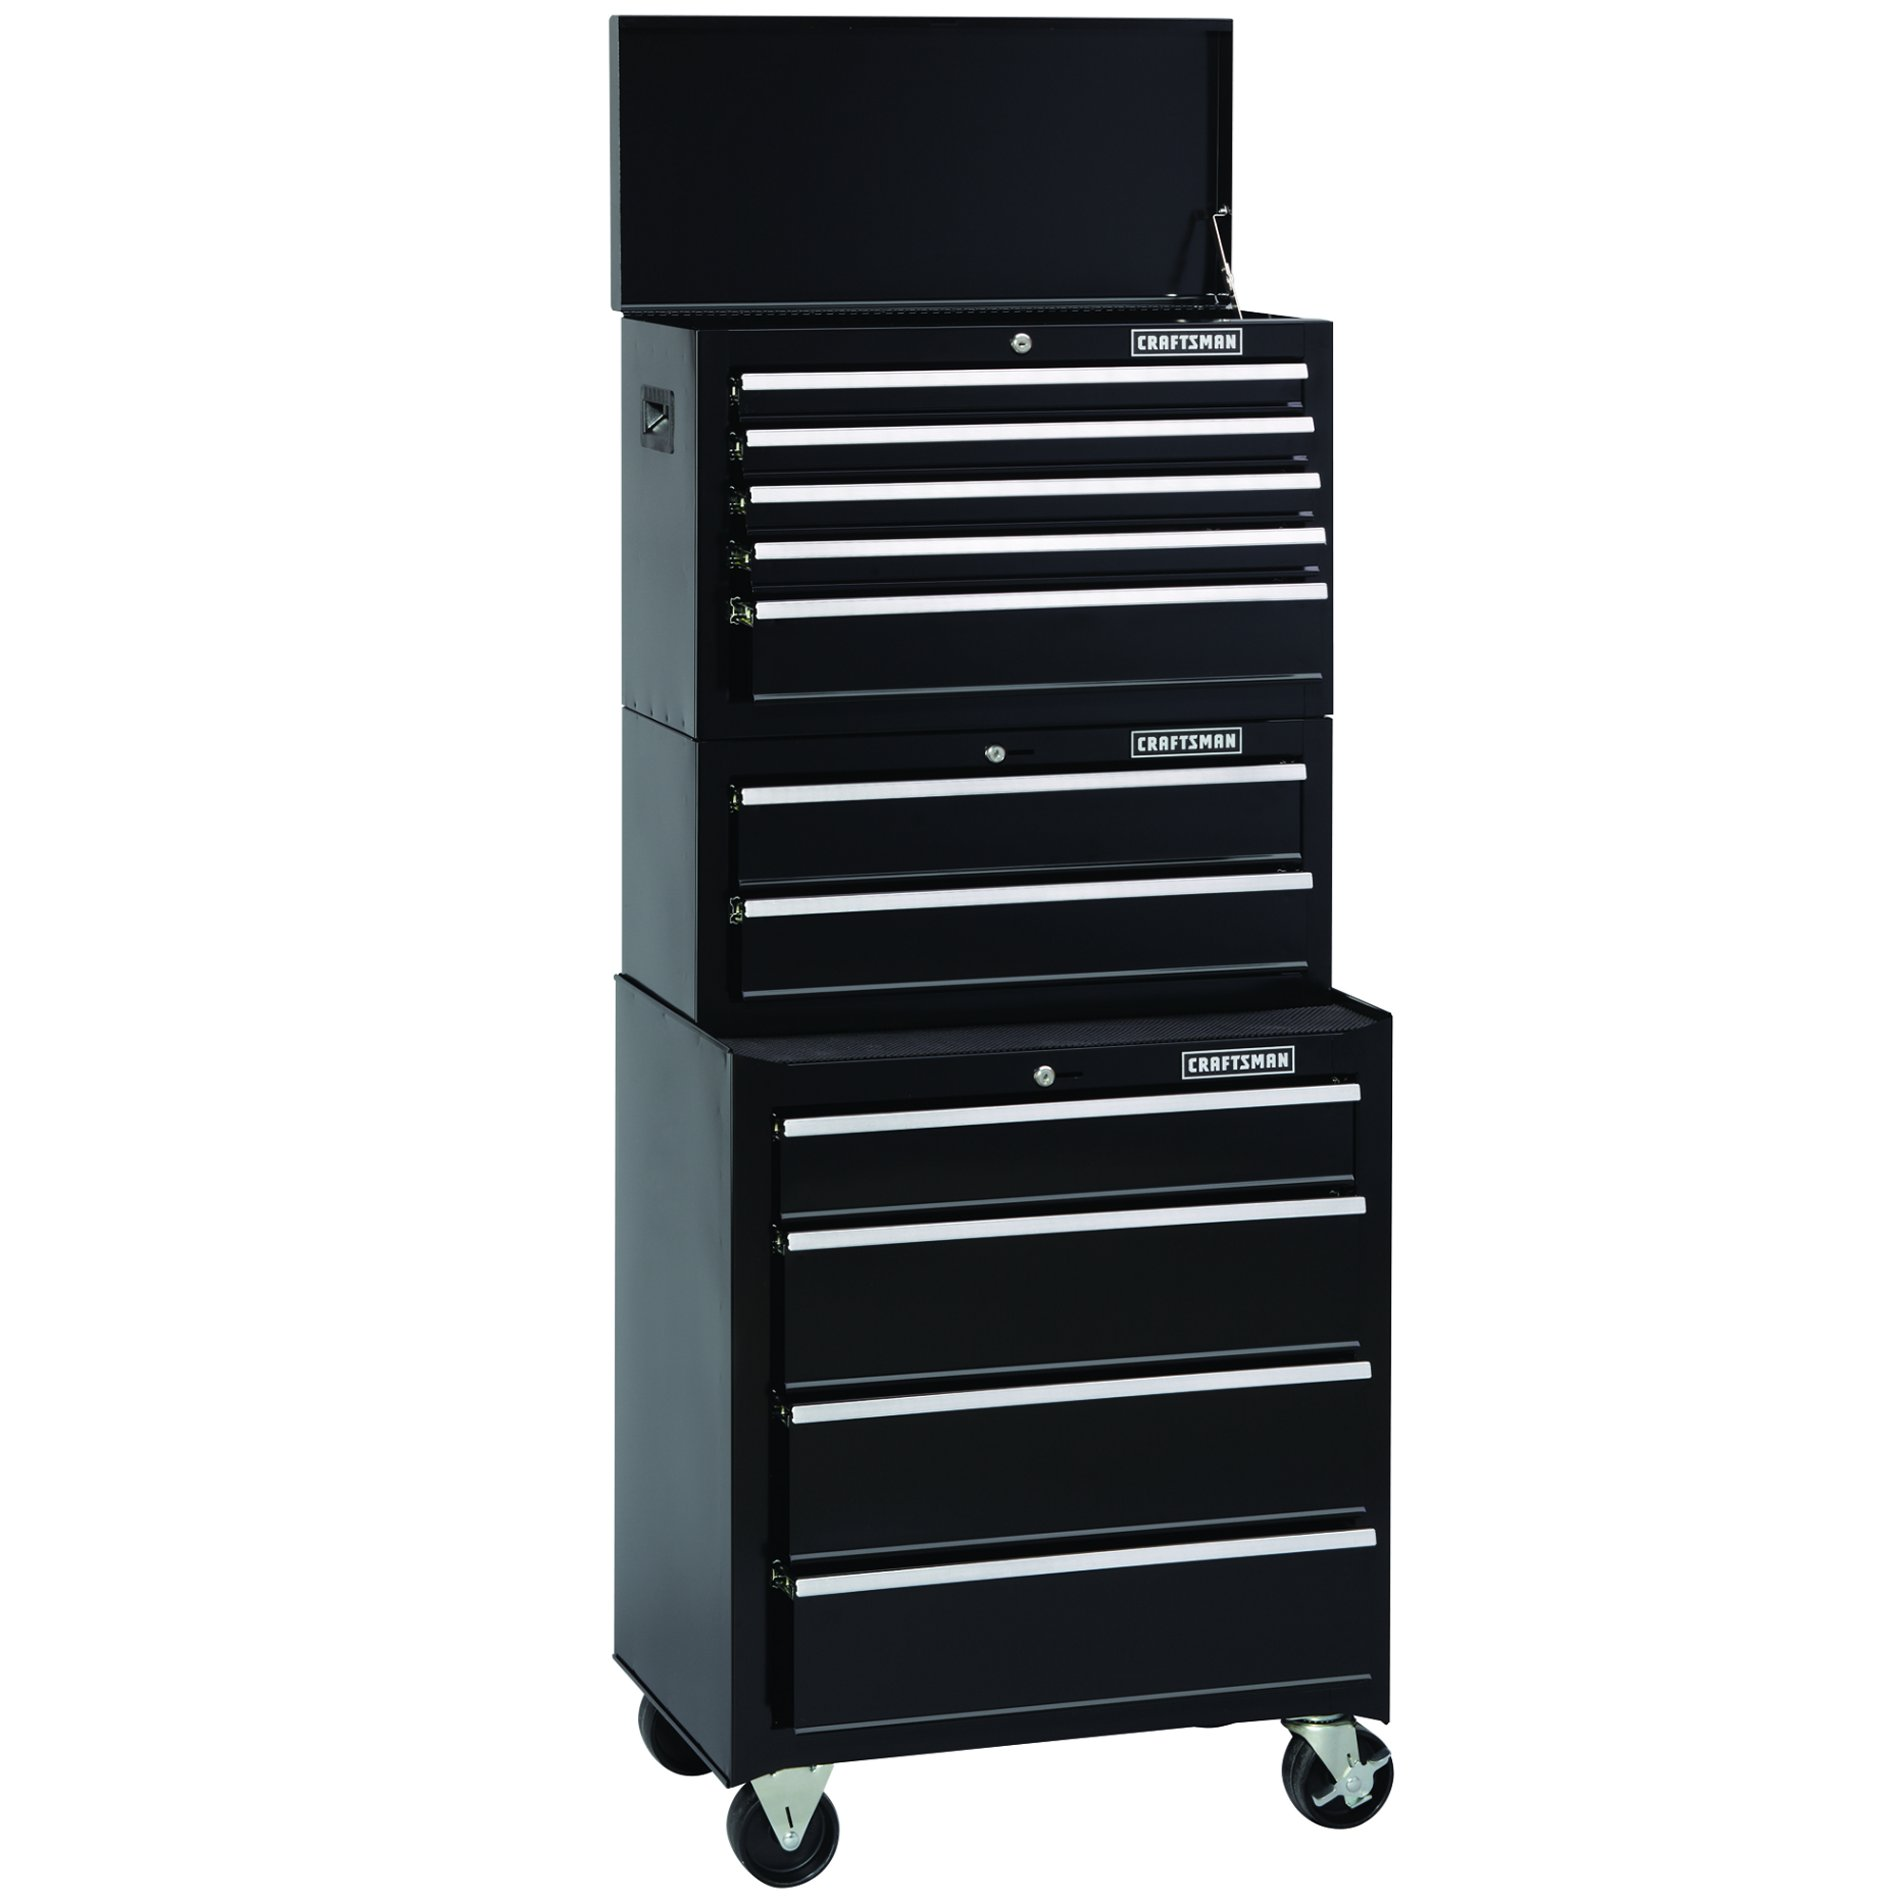 Craftsman 26 in. 4-Drawer Standard Duty Ball Bearing Rolling Cabinet - Black